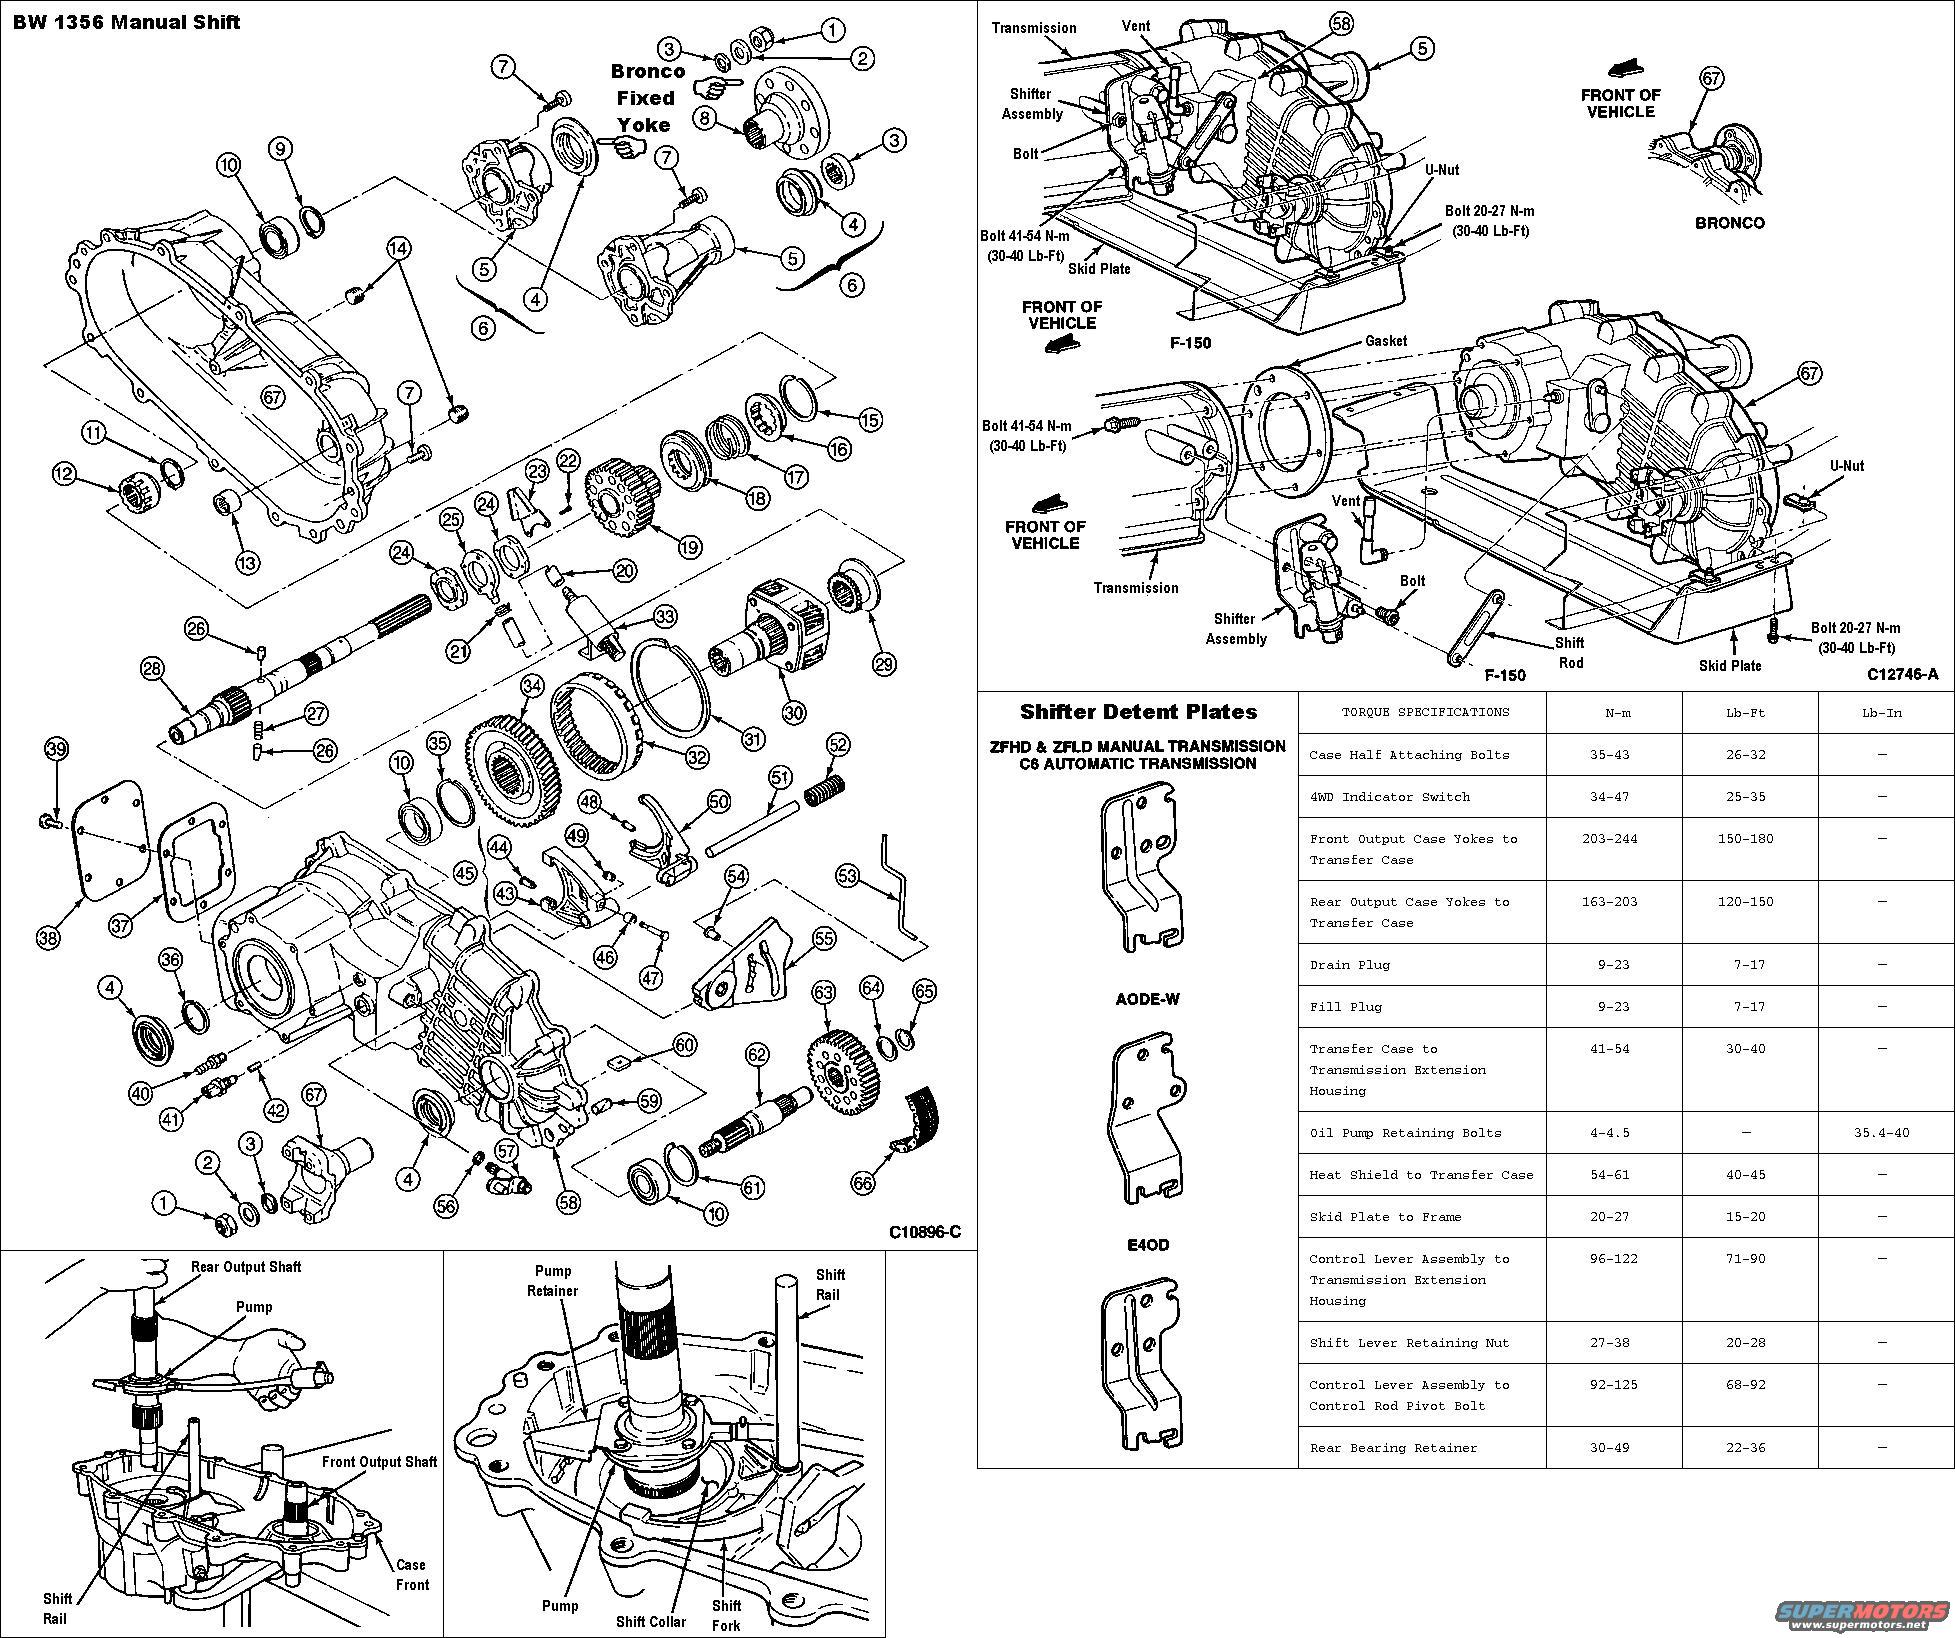 Diagram Of 2005 Lincoln Town Car Engine besides 52301 10 07 additionally 255472 1991 Jeep Wrangler Yj Convertible Chevy 327 V8 Th350 Automatic Great Project moreover 7967 Hyundai Trio Santro I10 Verna 16 besides HP PartList. on jeep wrangler front drive shaft parts